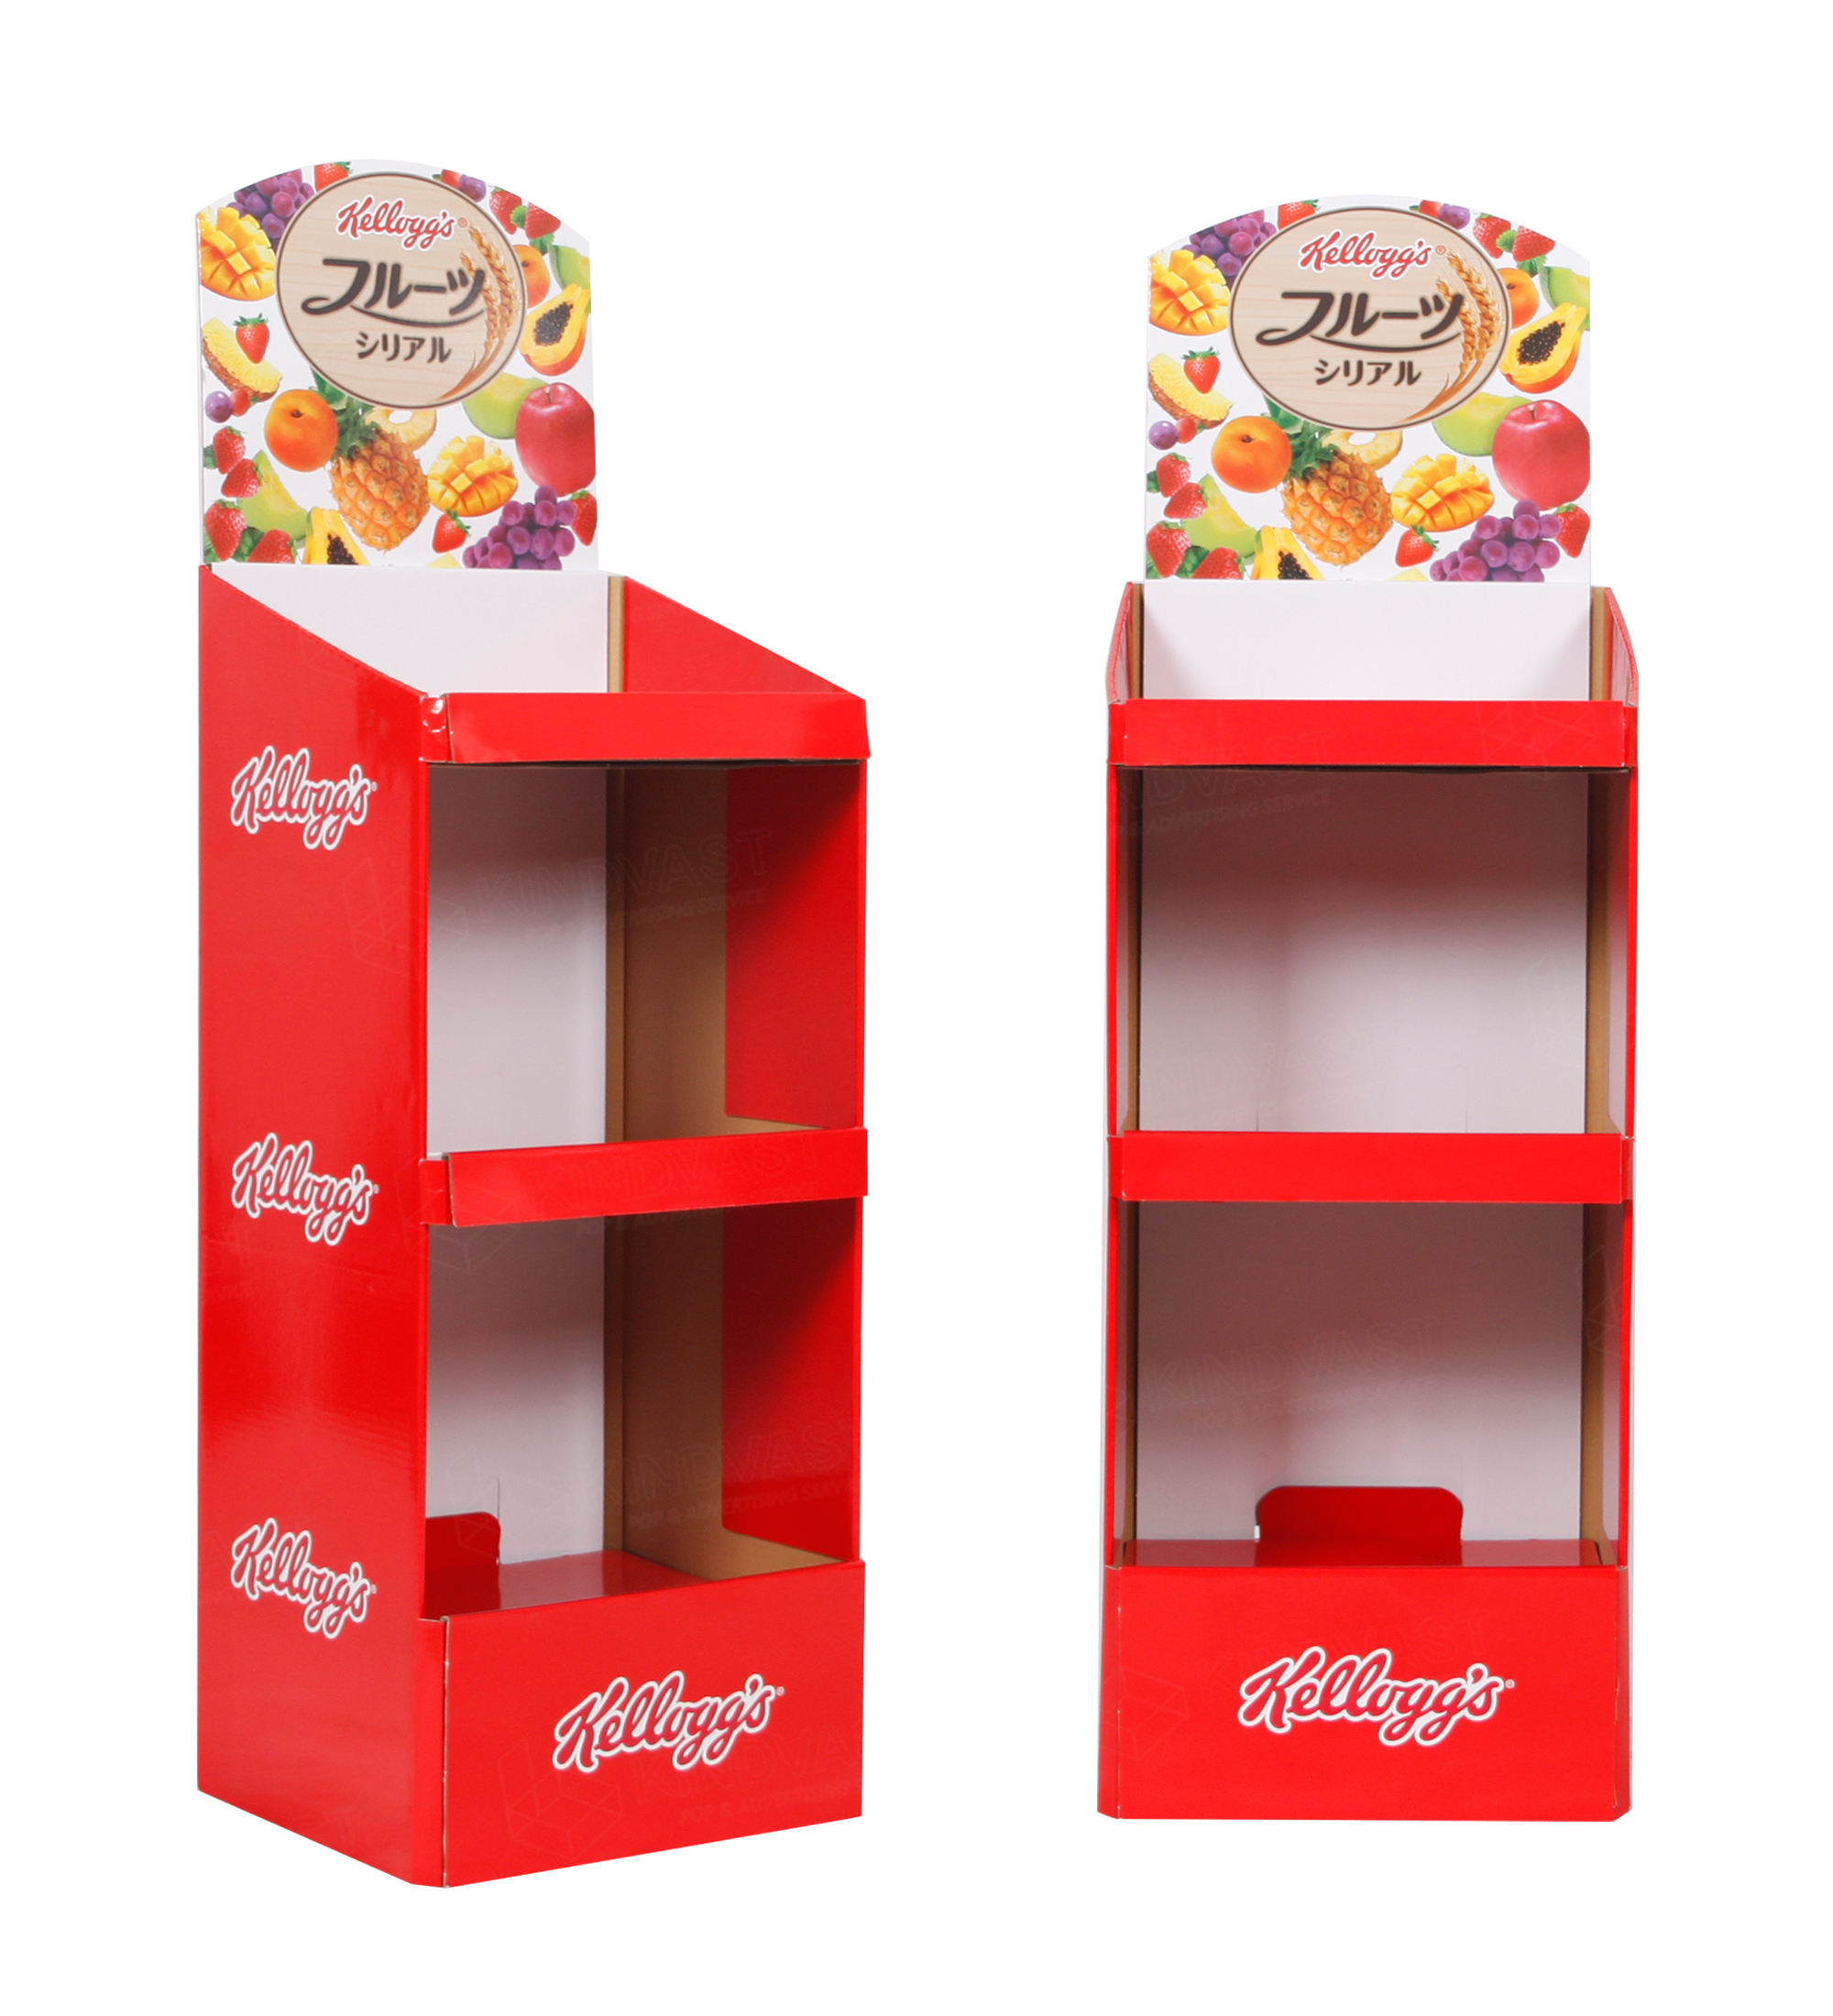 Supermarkt Kartonnen Groente & Fruit Reclame Display Floor Stand